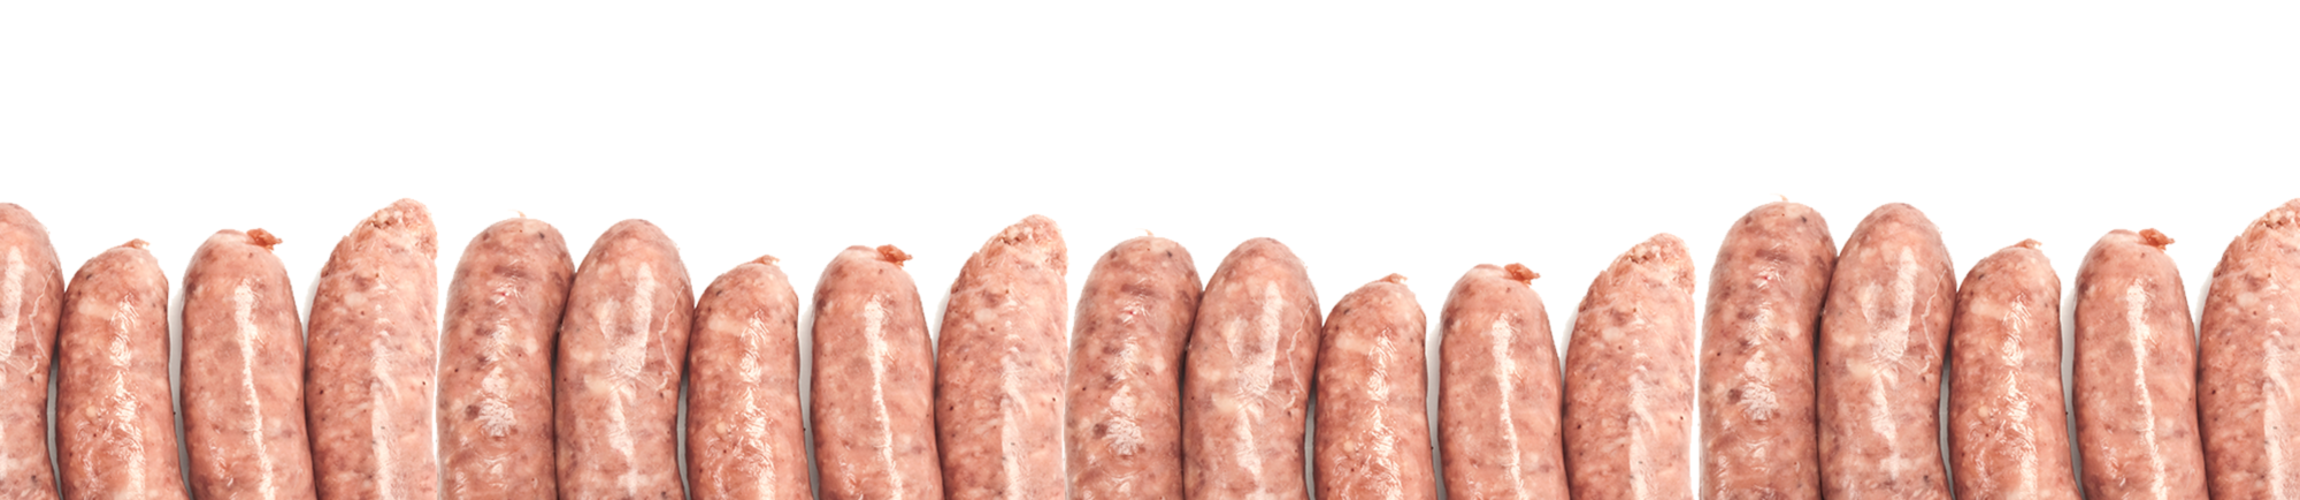 Sausage and Burger Manufacturers, Sausage Makers, Sausage Suppliers